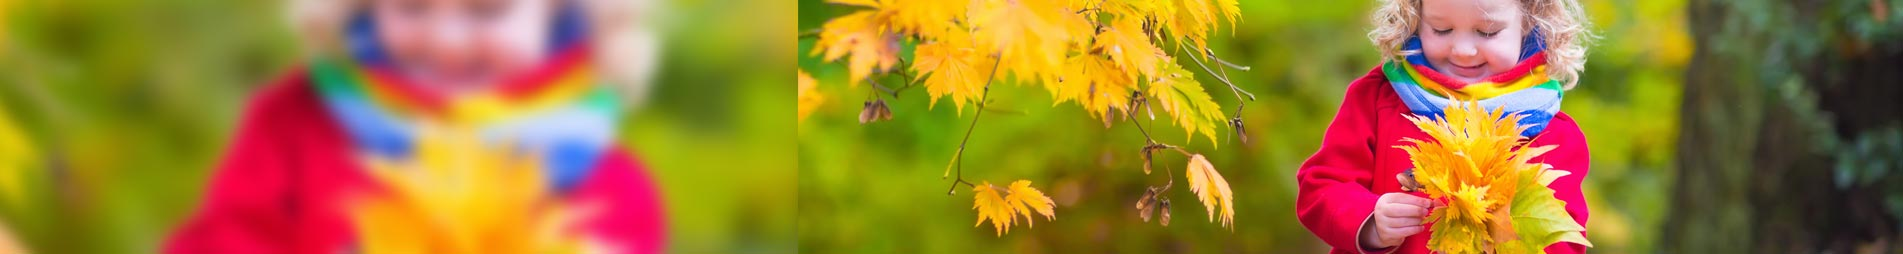 family law edinburgh services